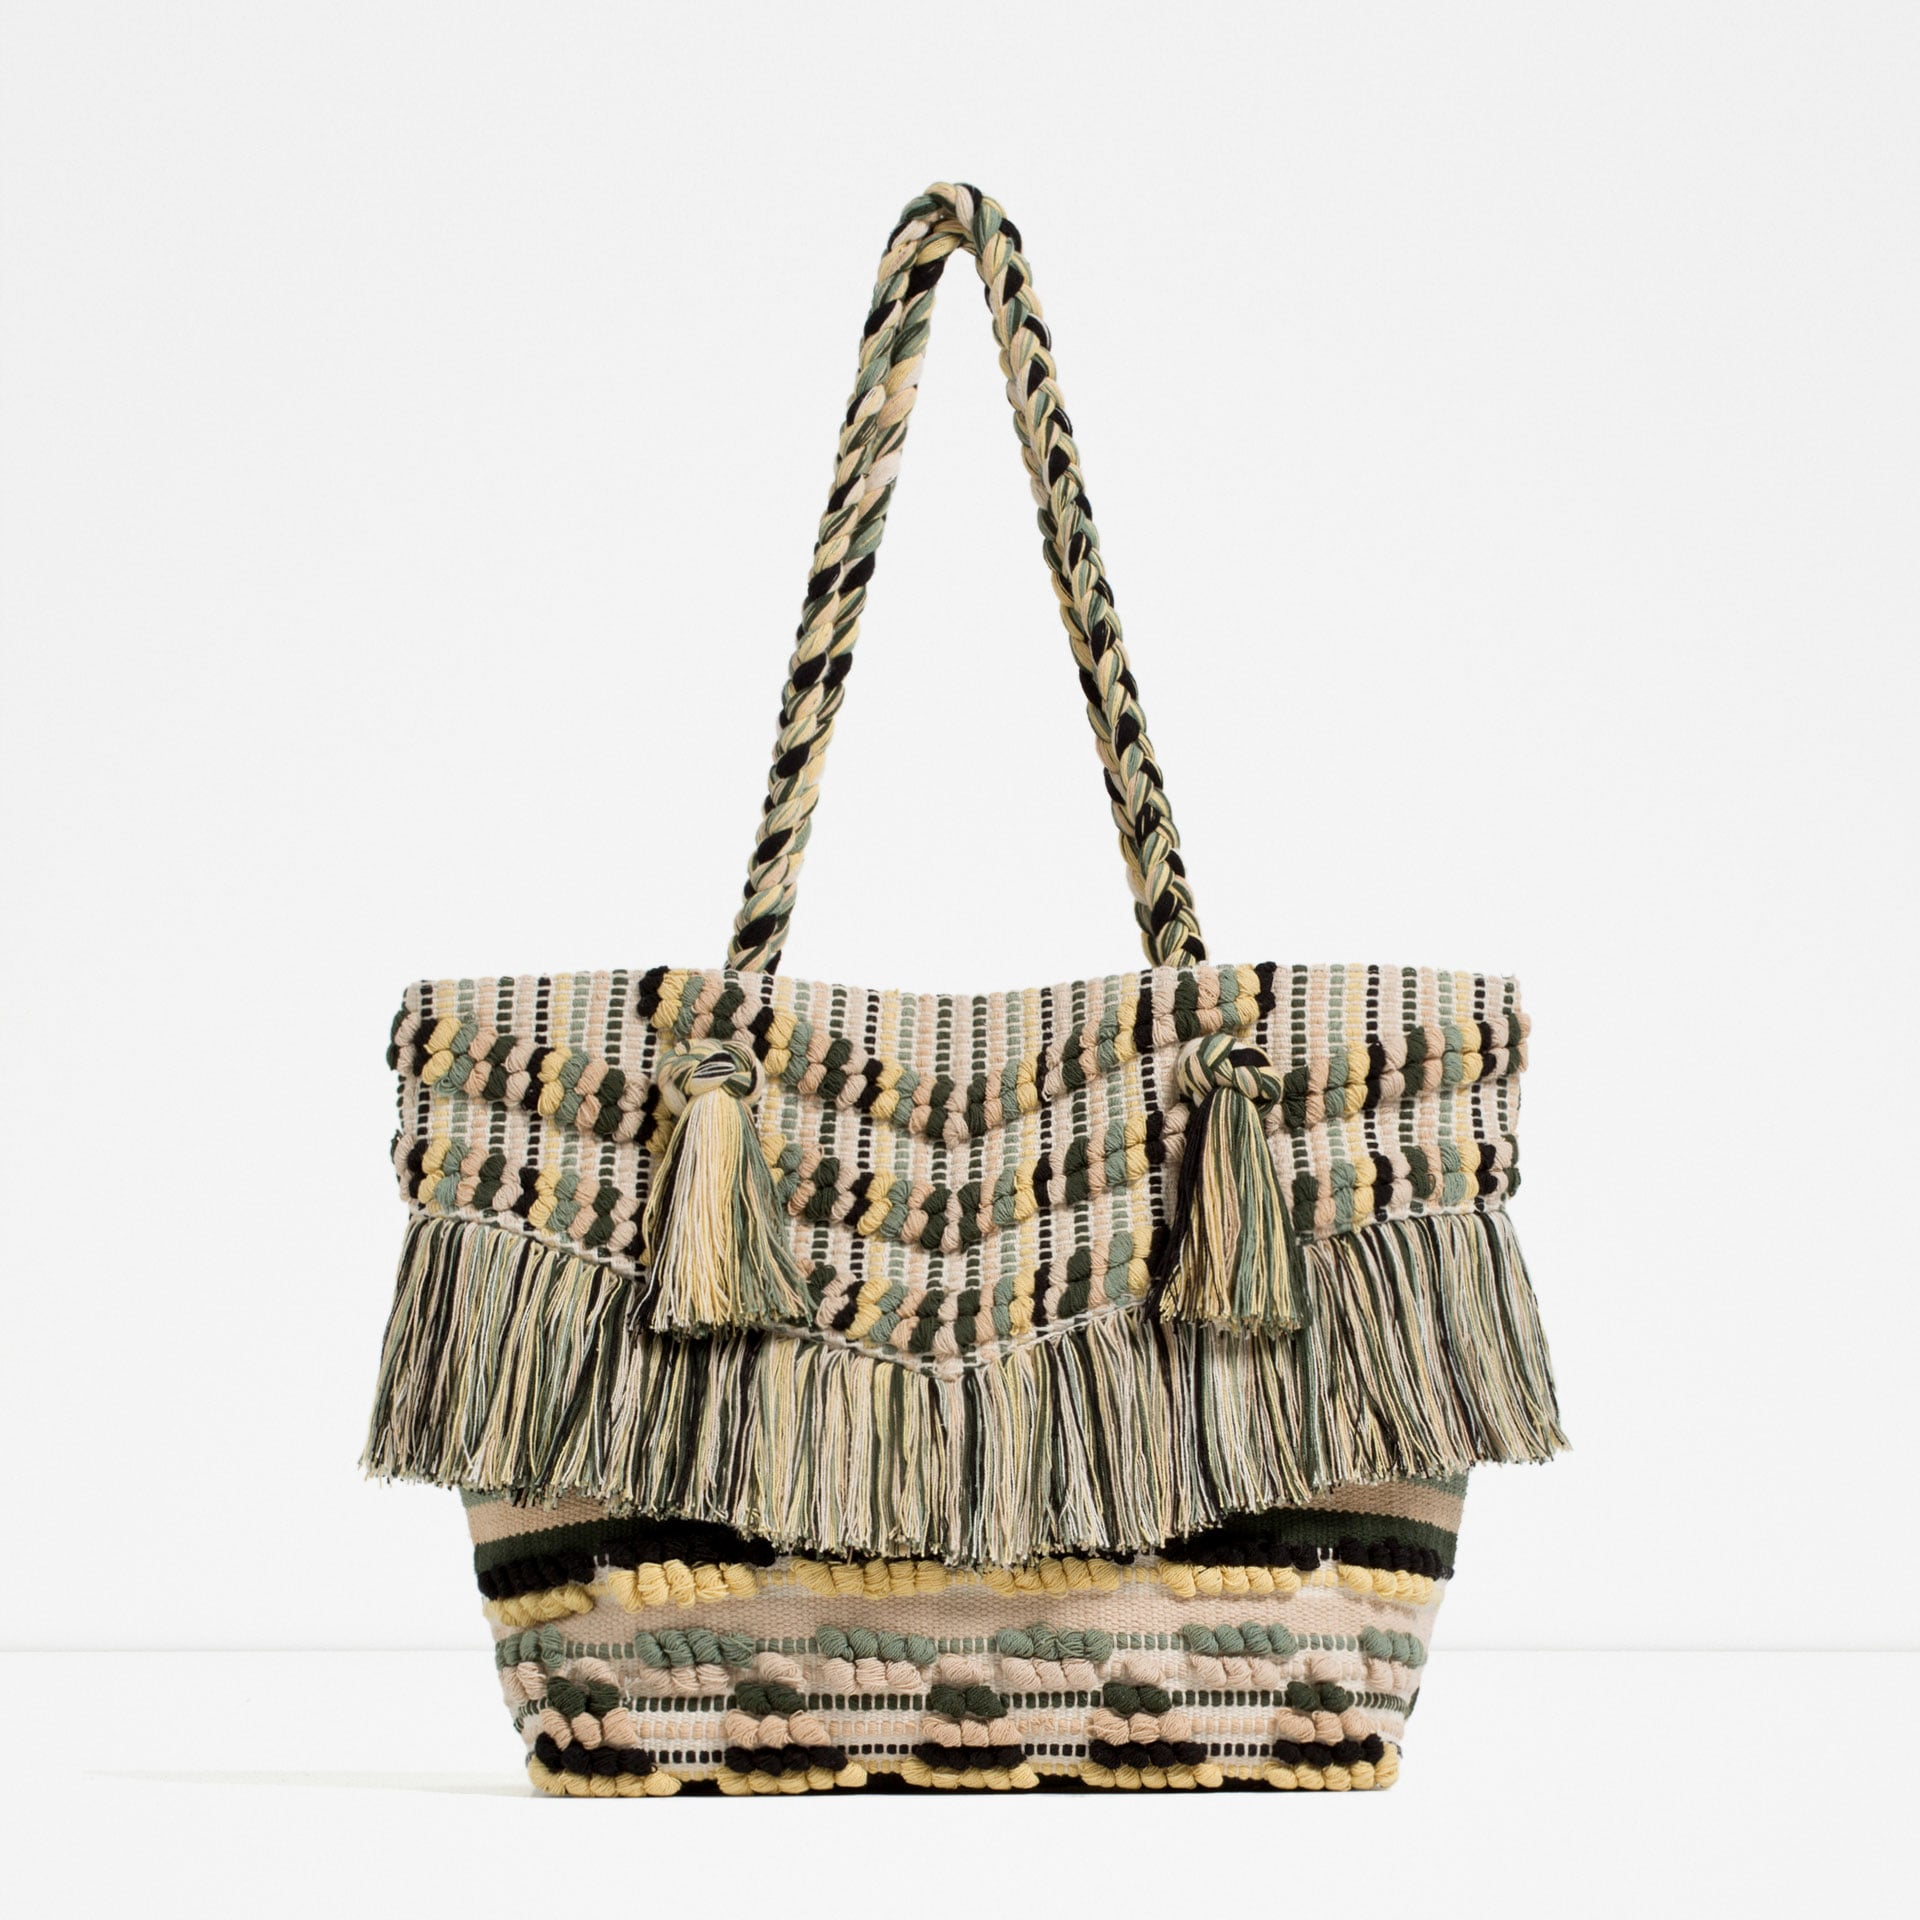 Zara Fringed Tote ($50) | 27 Stylish Beach Bags You Can Match to ...